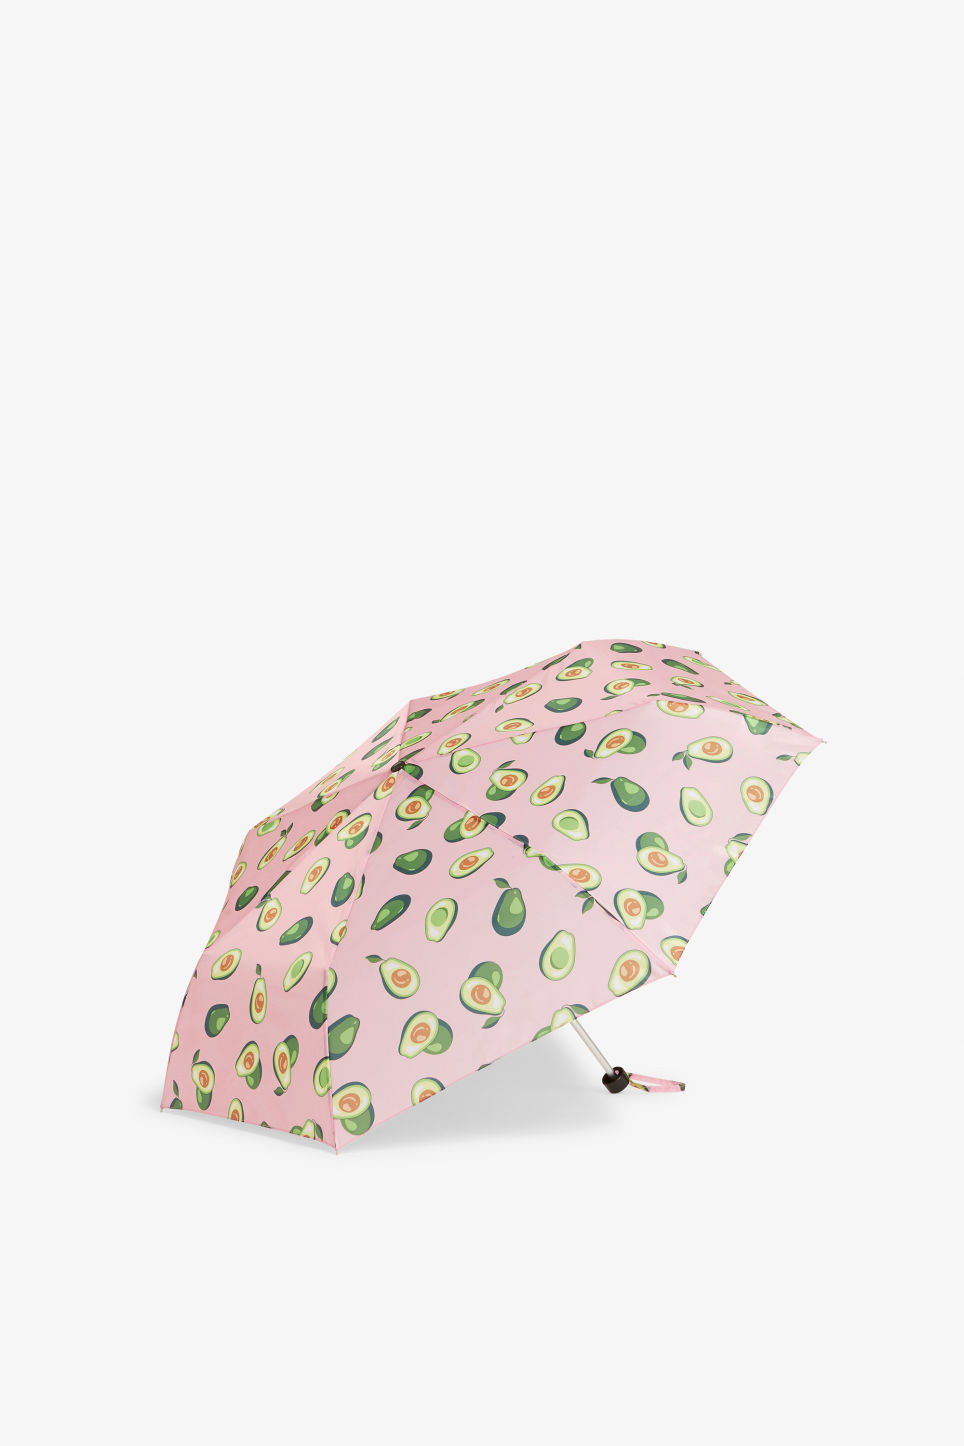 Detailed image of Monki monki umbrella in pink